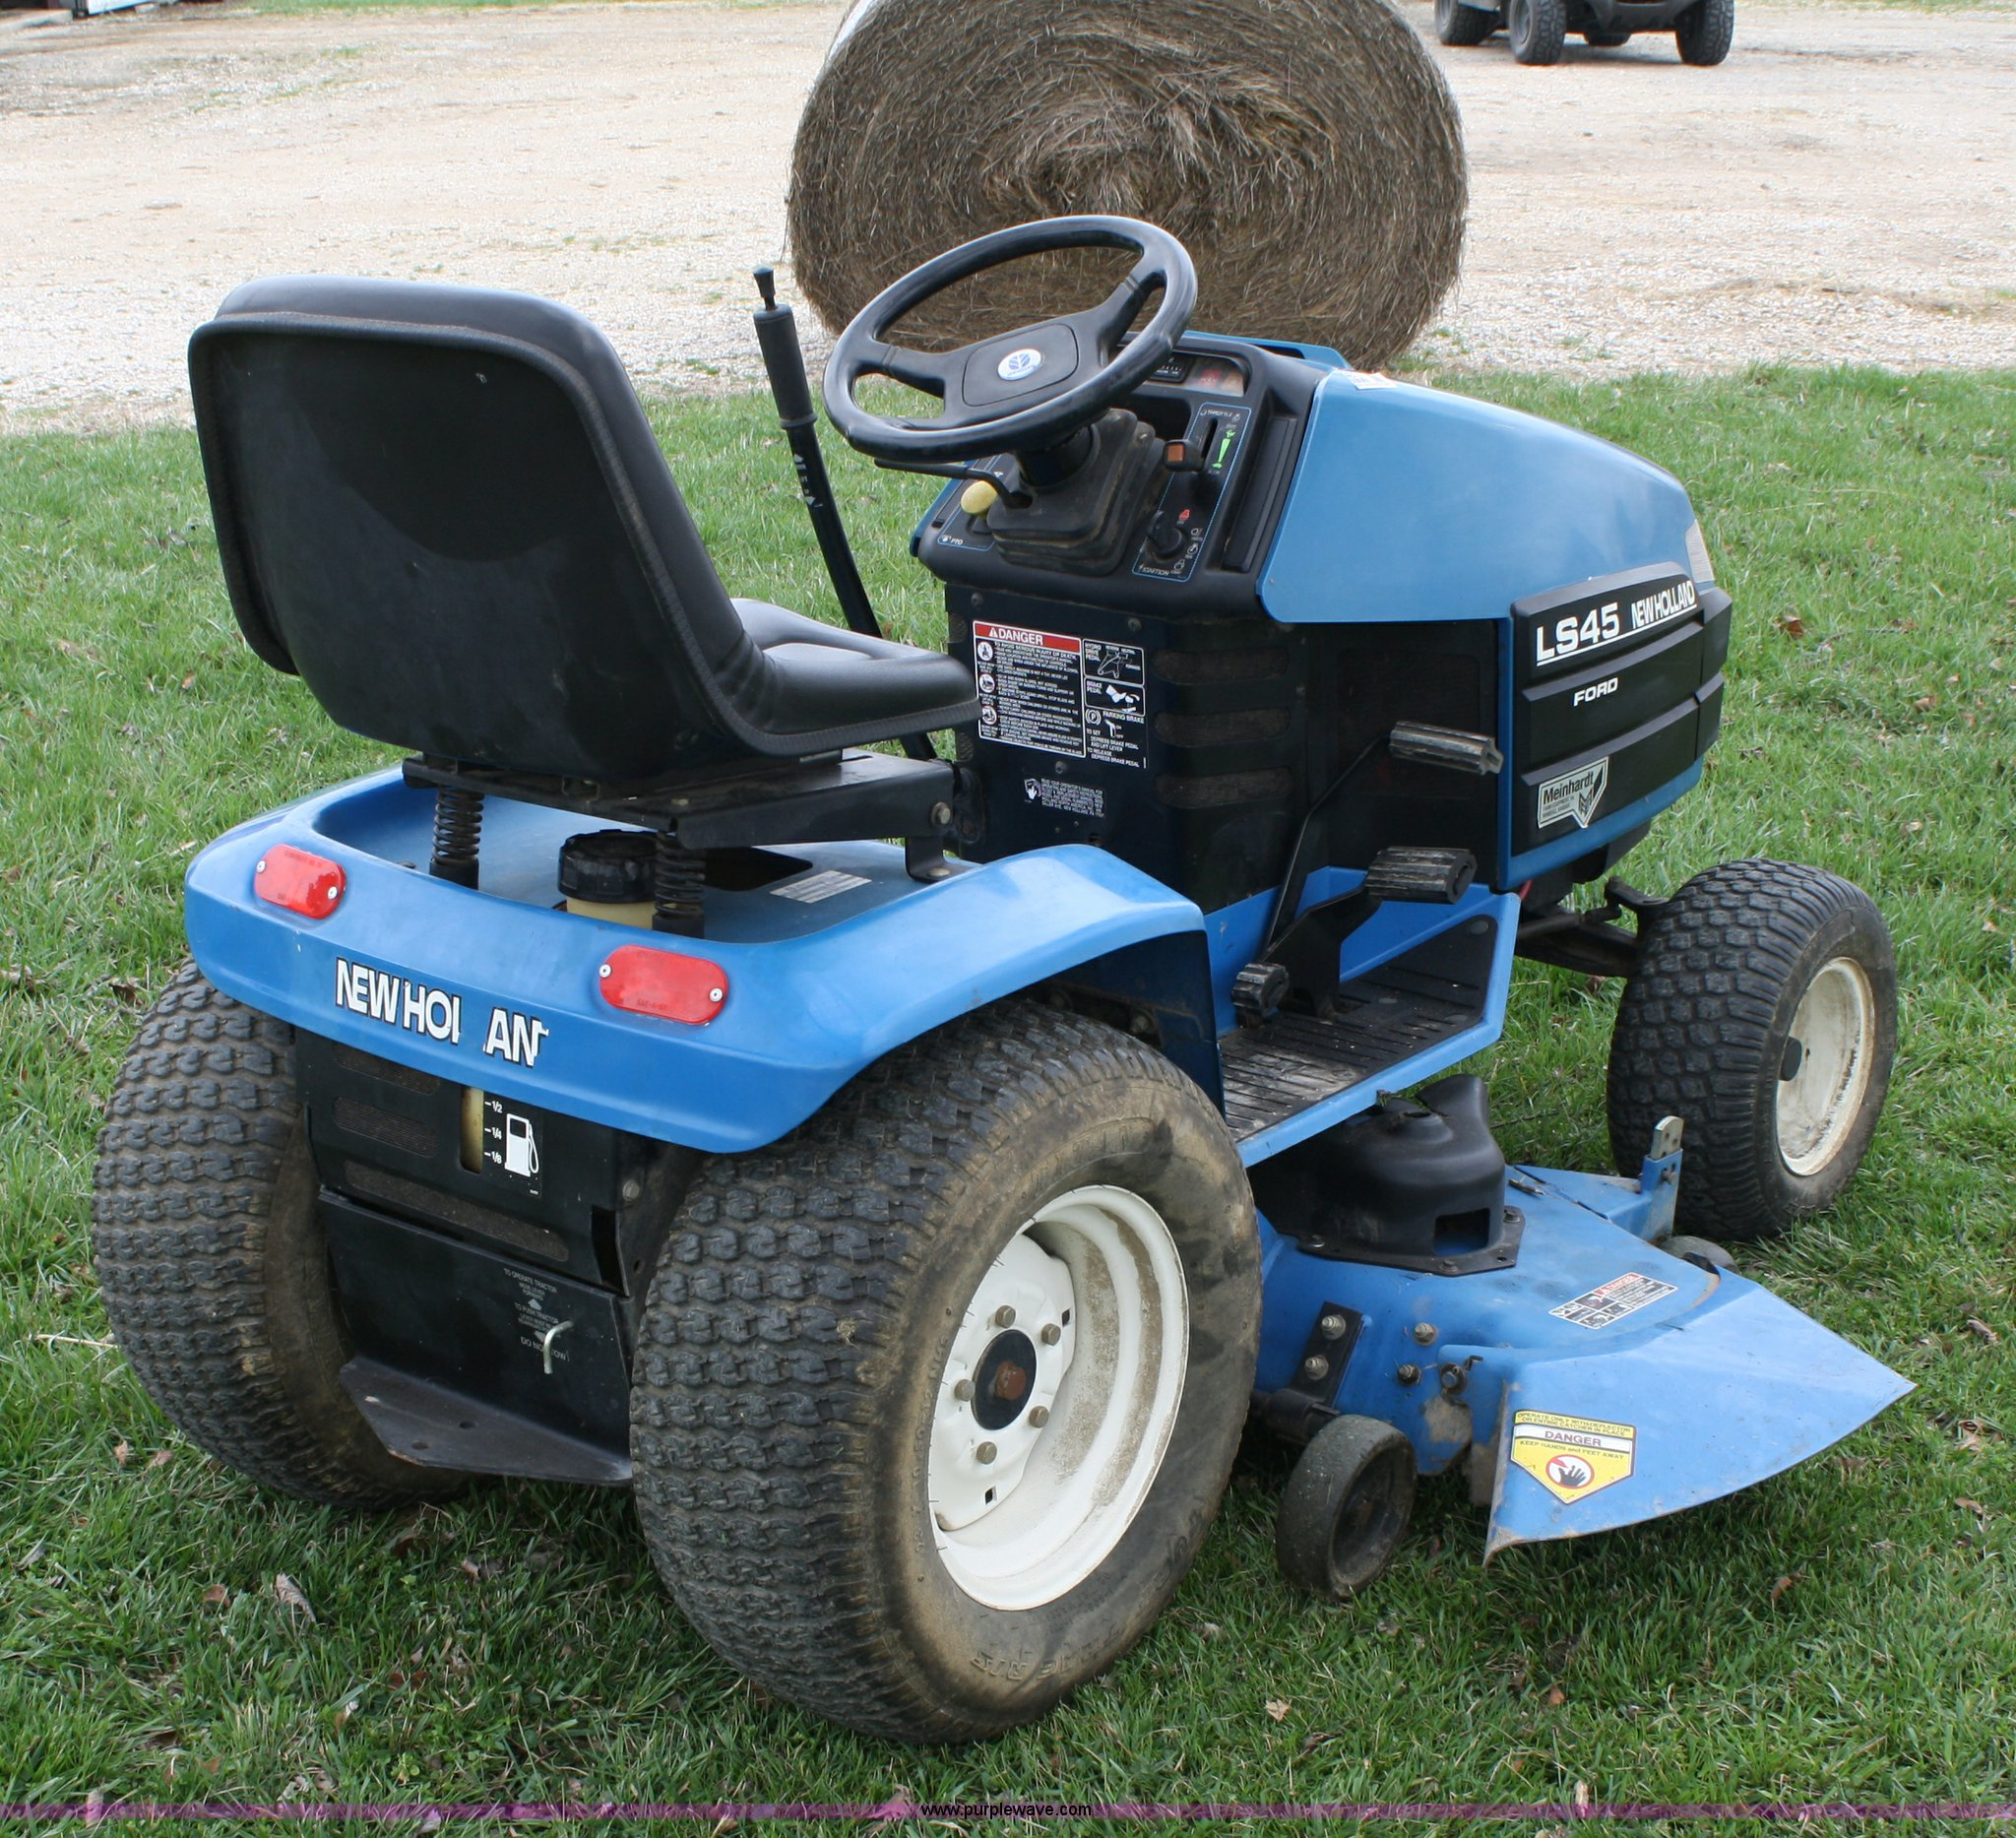 ford new holland ls45 lawn mower item 4673 sold april 2 rh purplewave com Ford Lawn Trackers Ford Ls35 Lawn Tractor